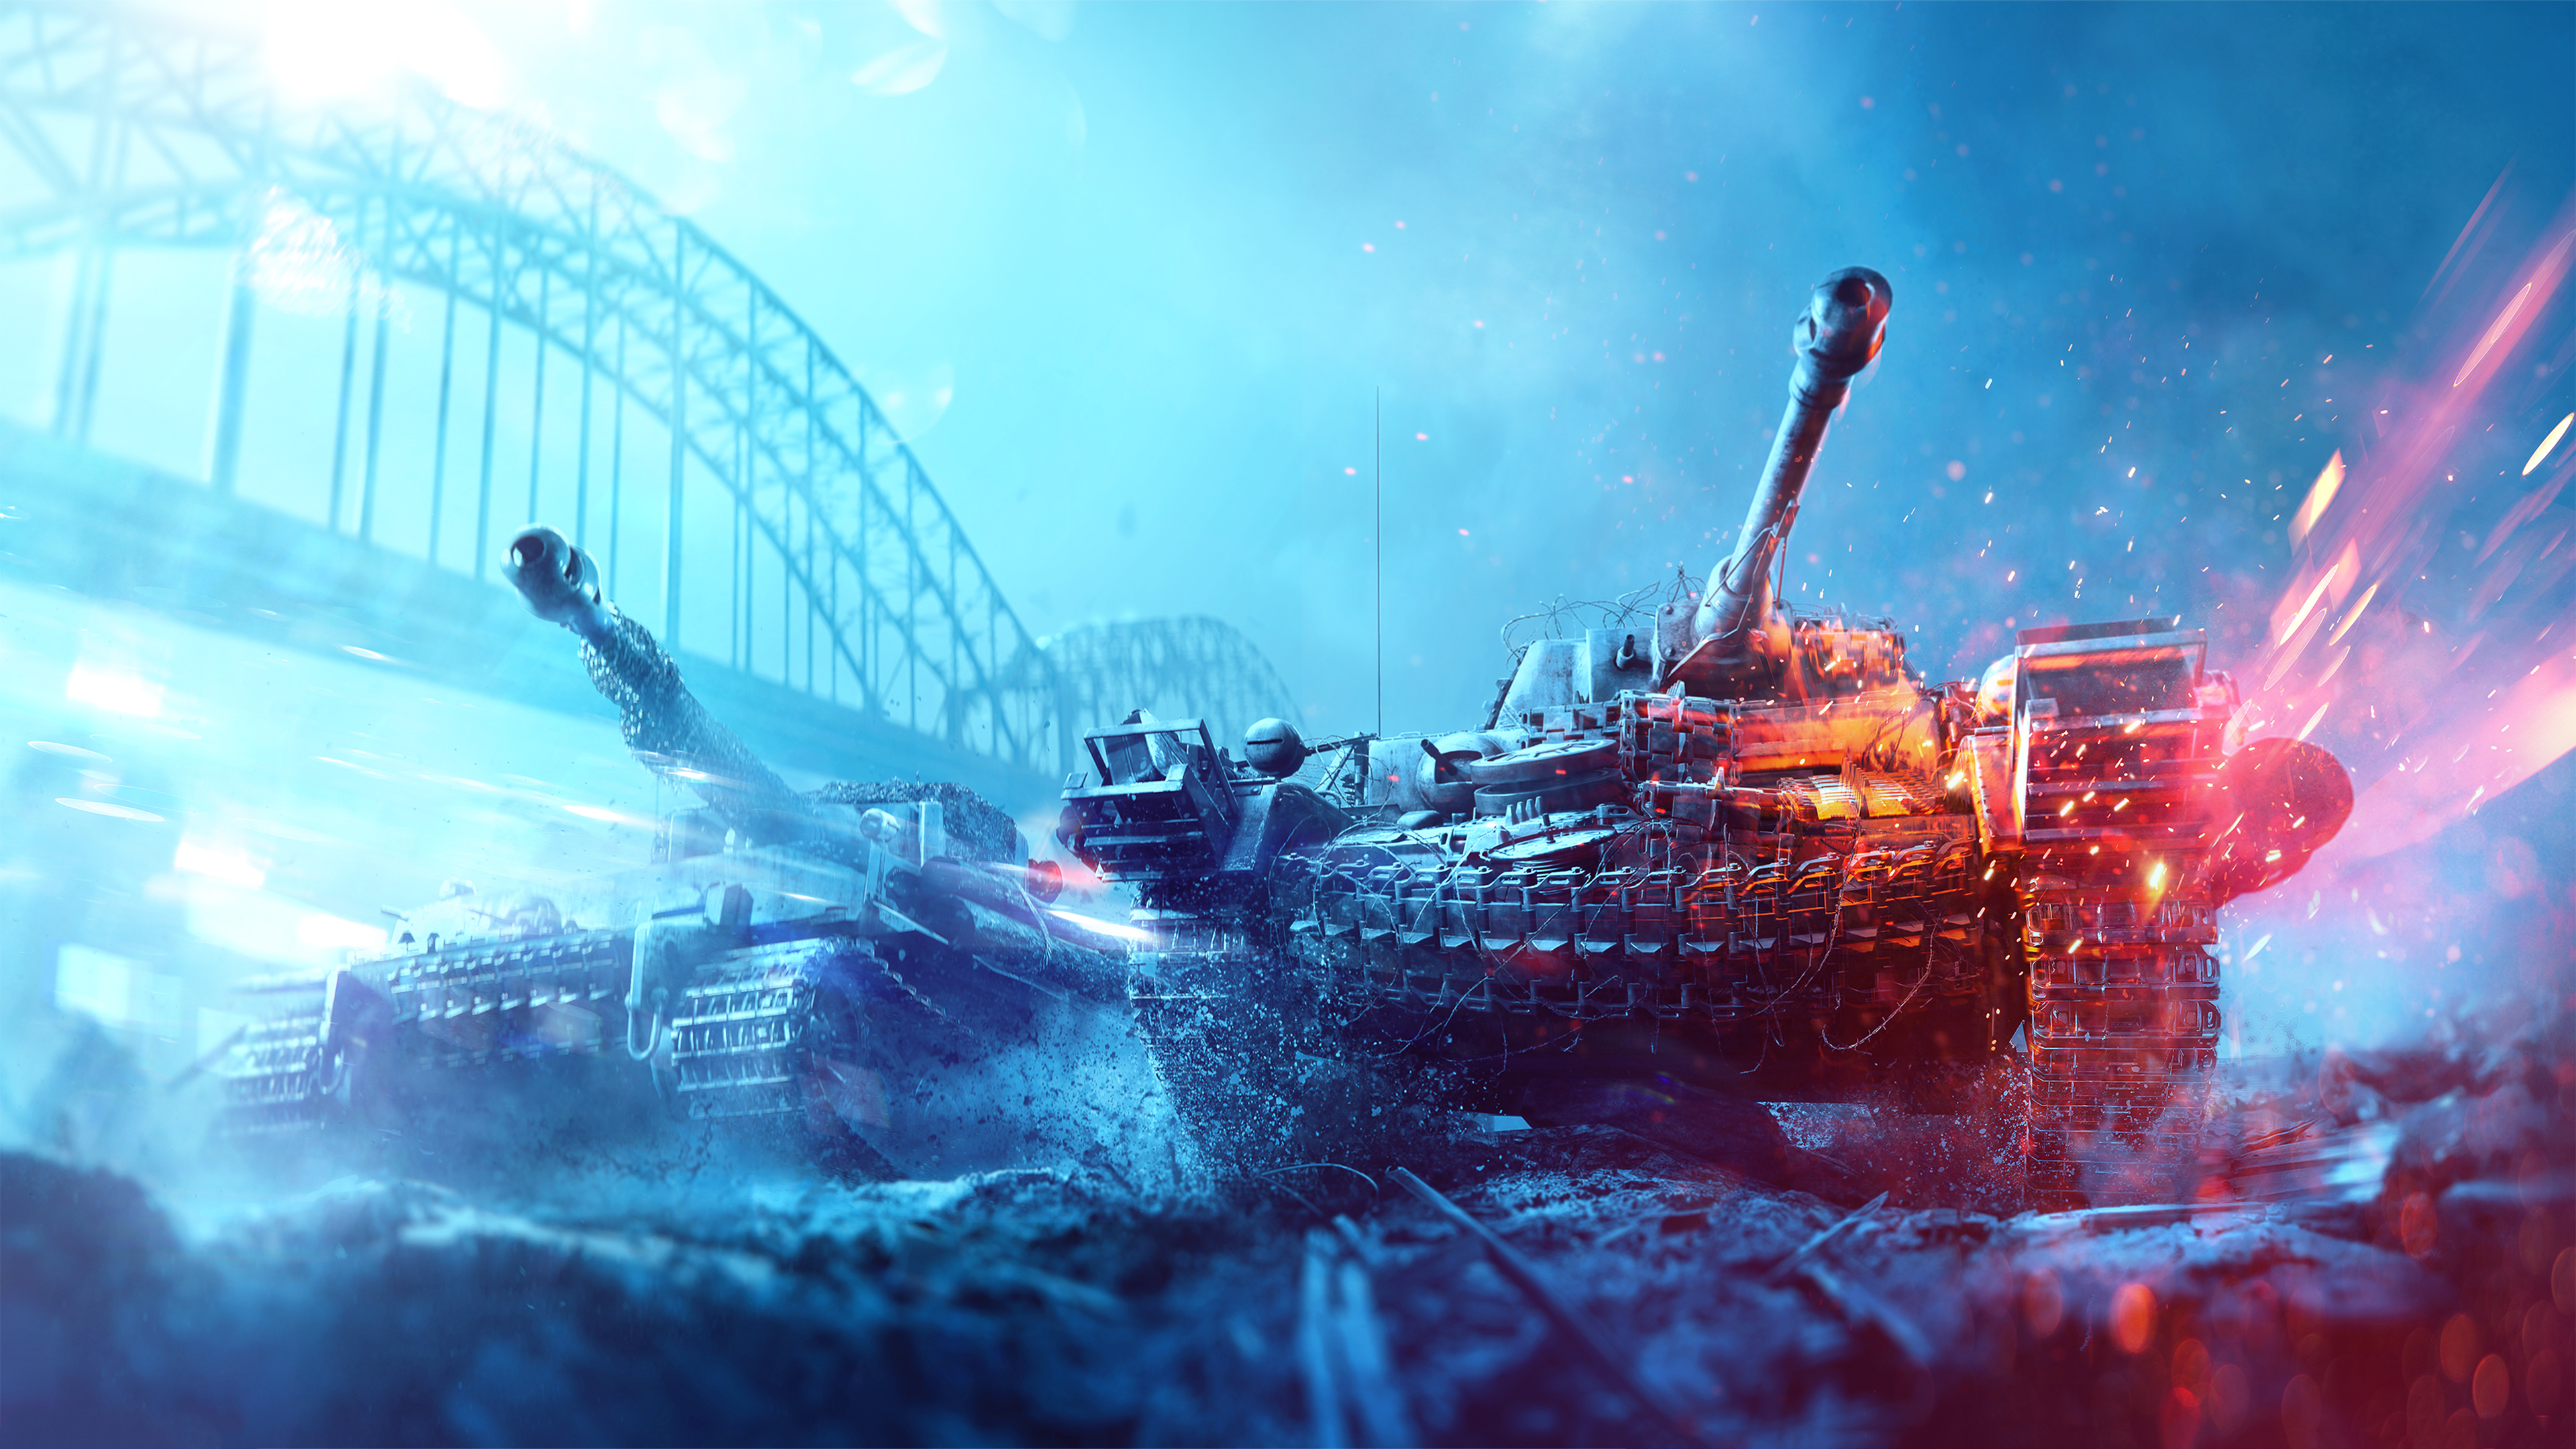 Battlefield 5 Hd Games 4k Wallpapers Images Backgrounds Photos And Pictures